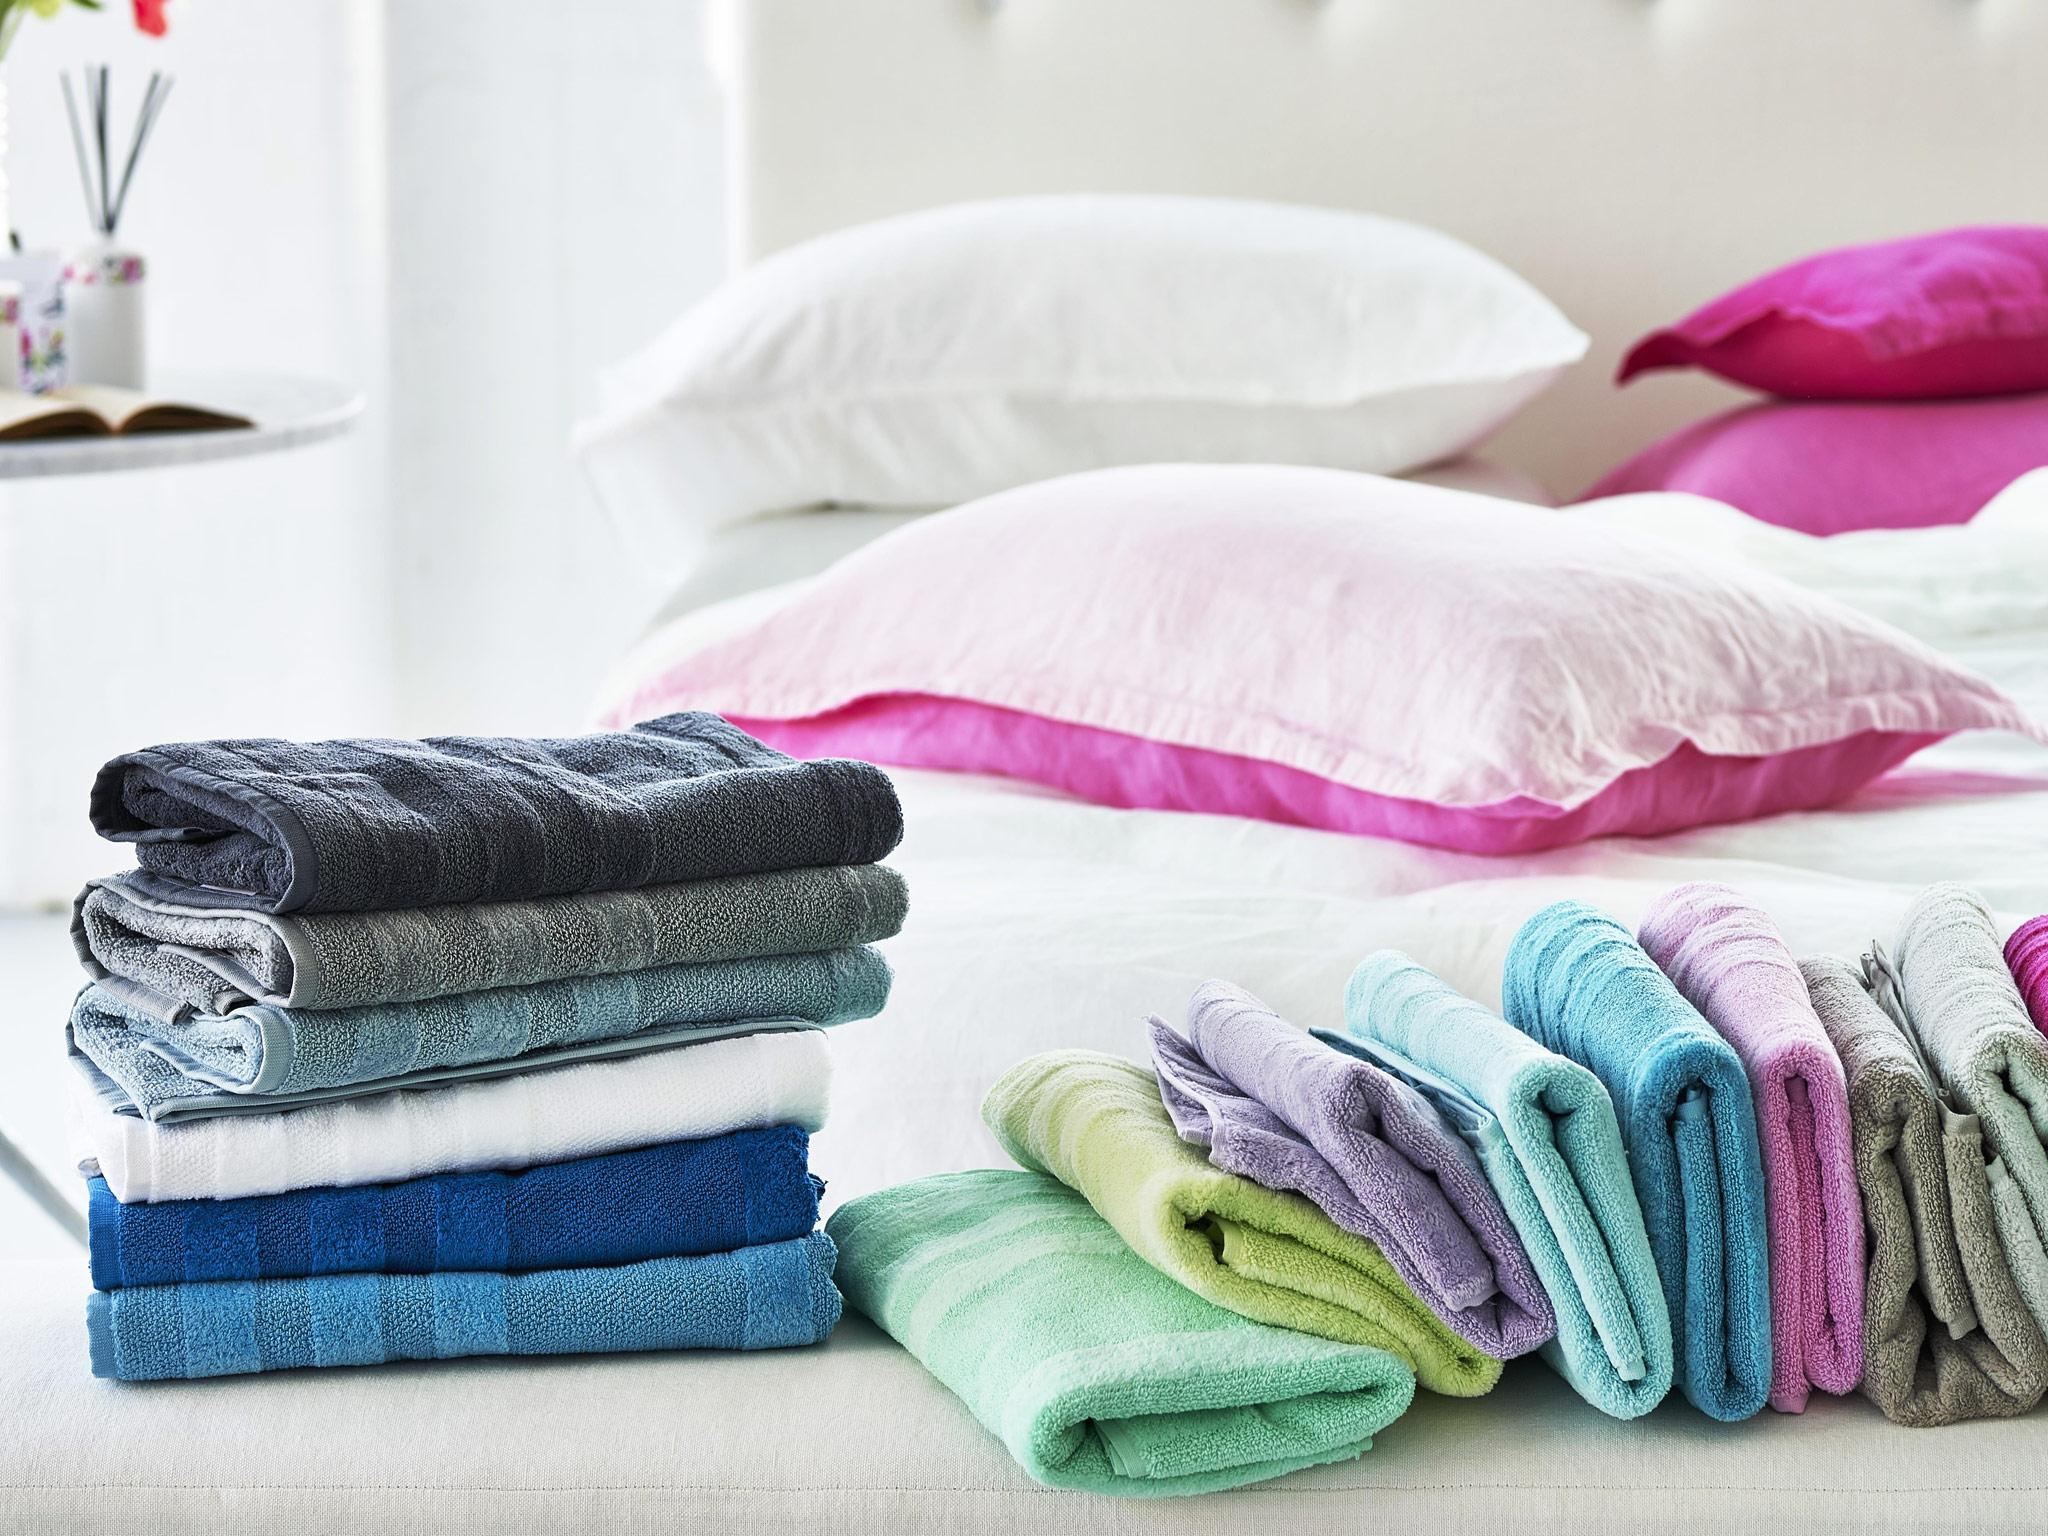 12 best towels | The Independentindependent_brand_ident_LOGOUntitled